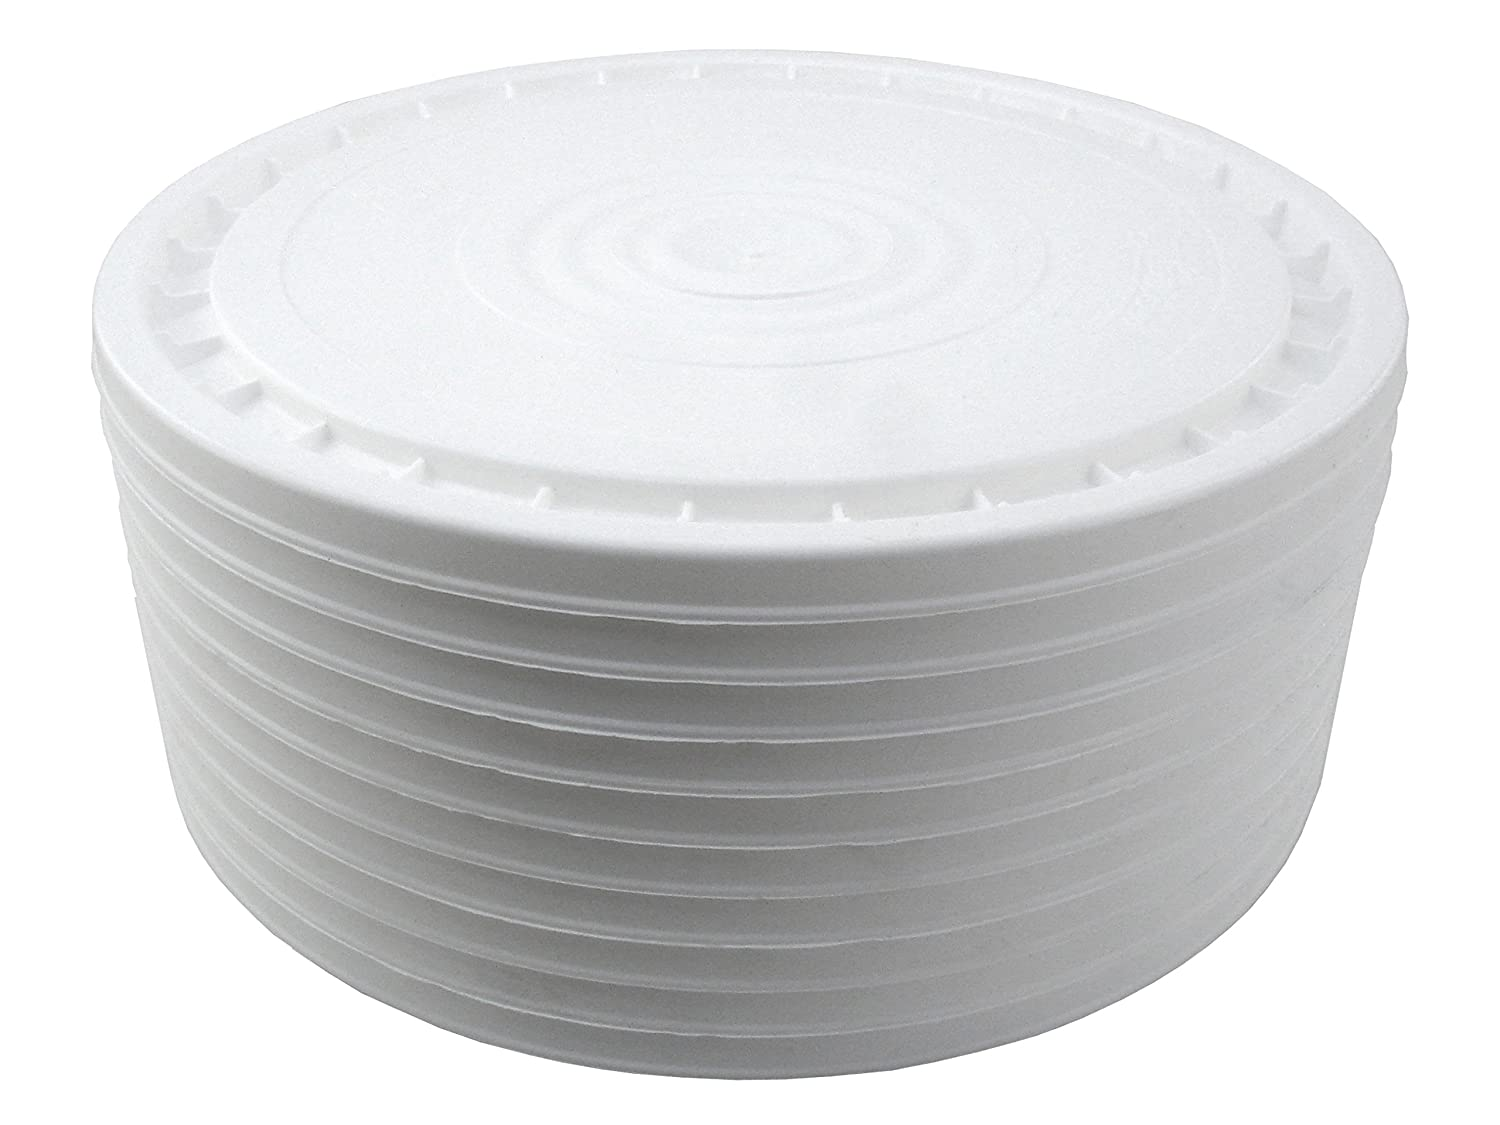 Poly Farm Flexible Easy Access Snap On Lids for 5 Gallon Buckets (Also fits Most 3.5, 6, and 7 Gallon Buckets) (White) (10)